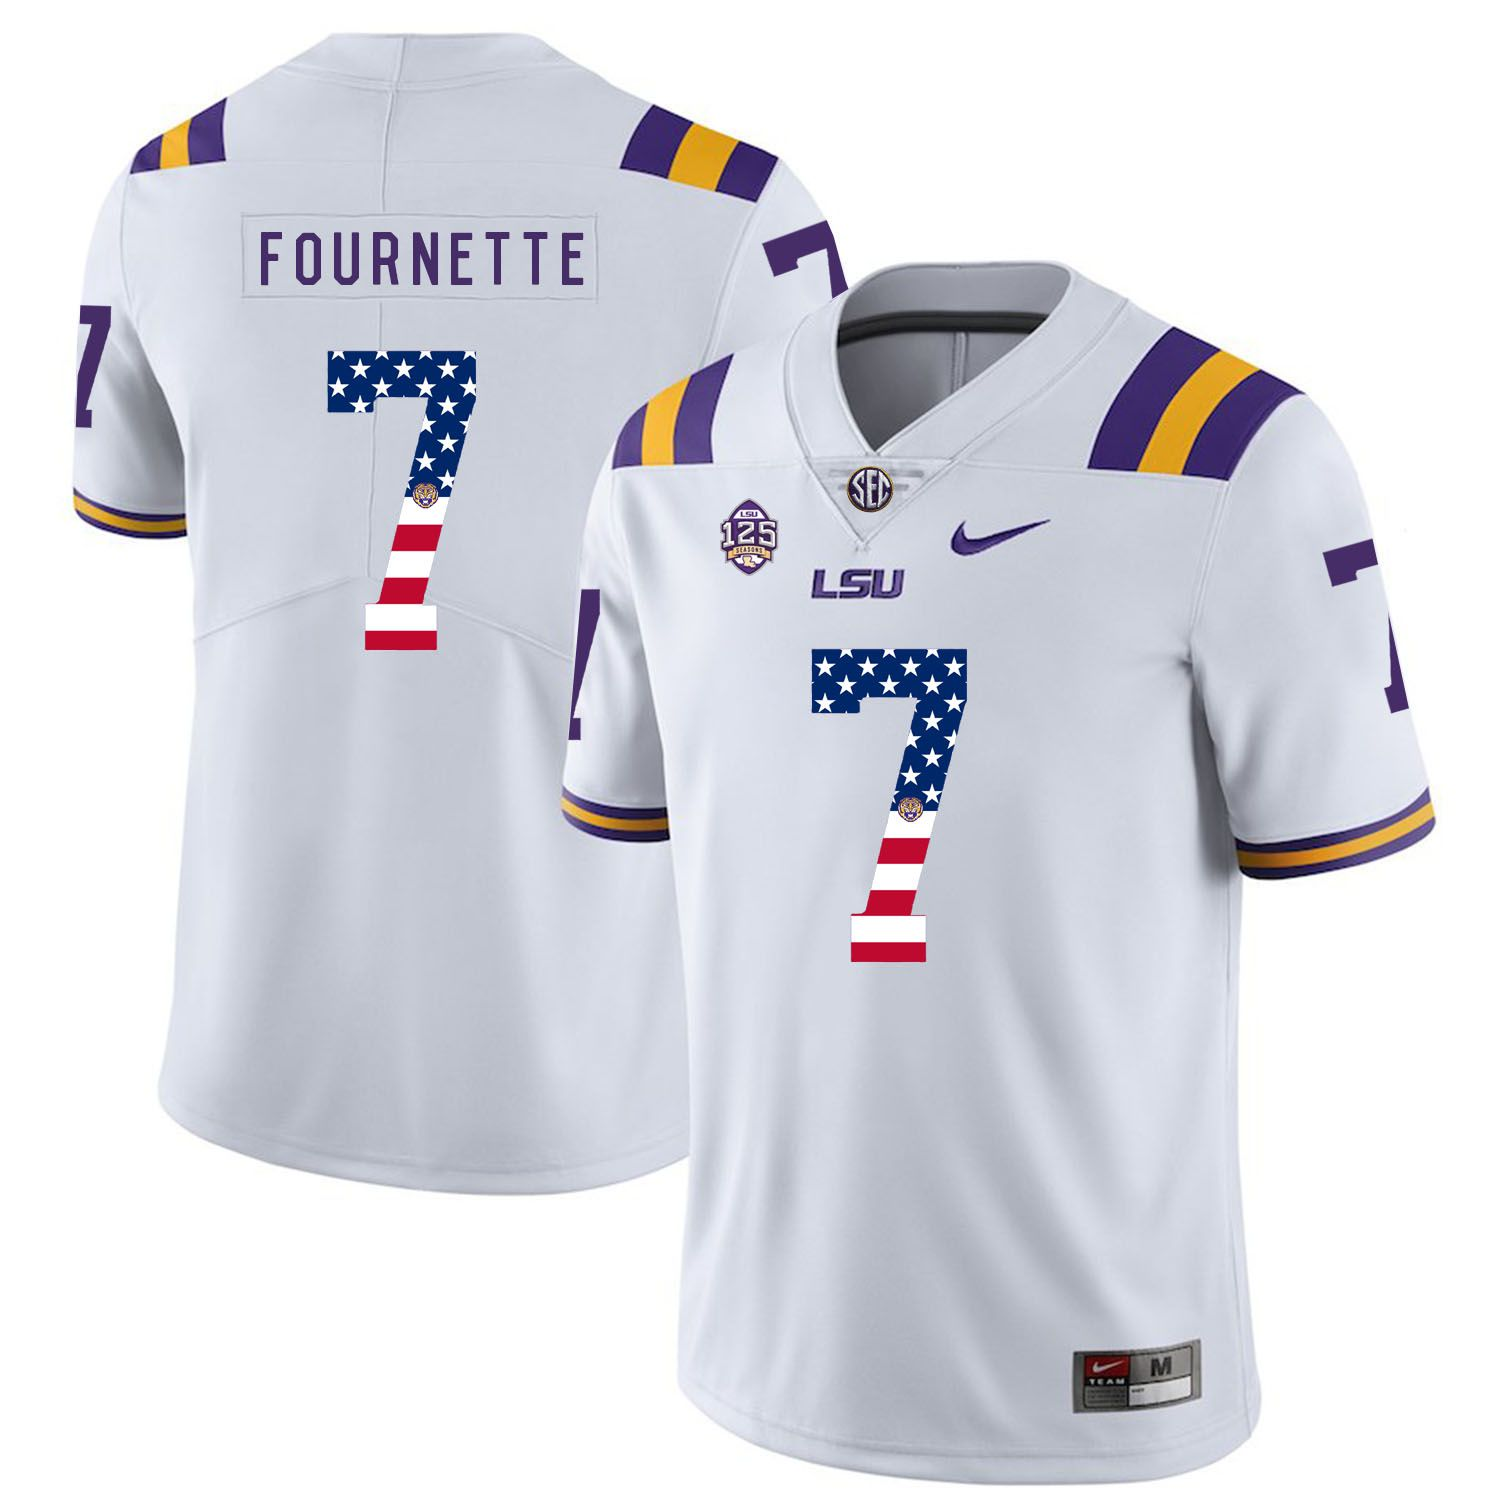 Men LSU Tigers 7 Fournette White Flag Customized NCAA Jerseys